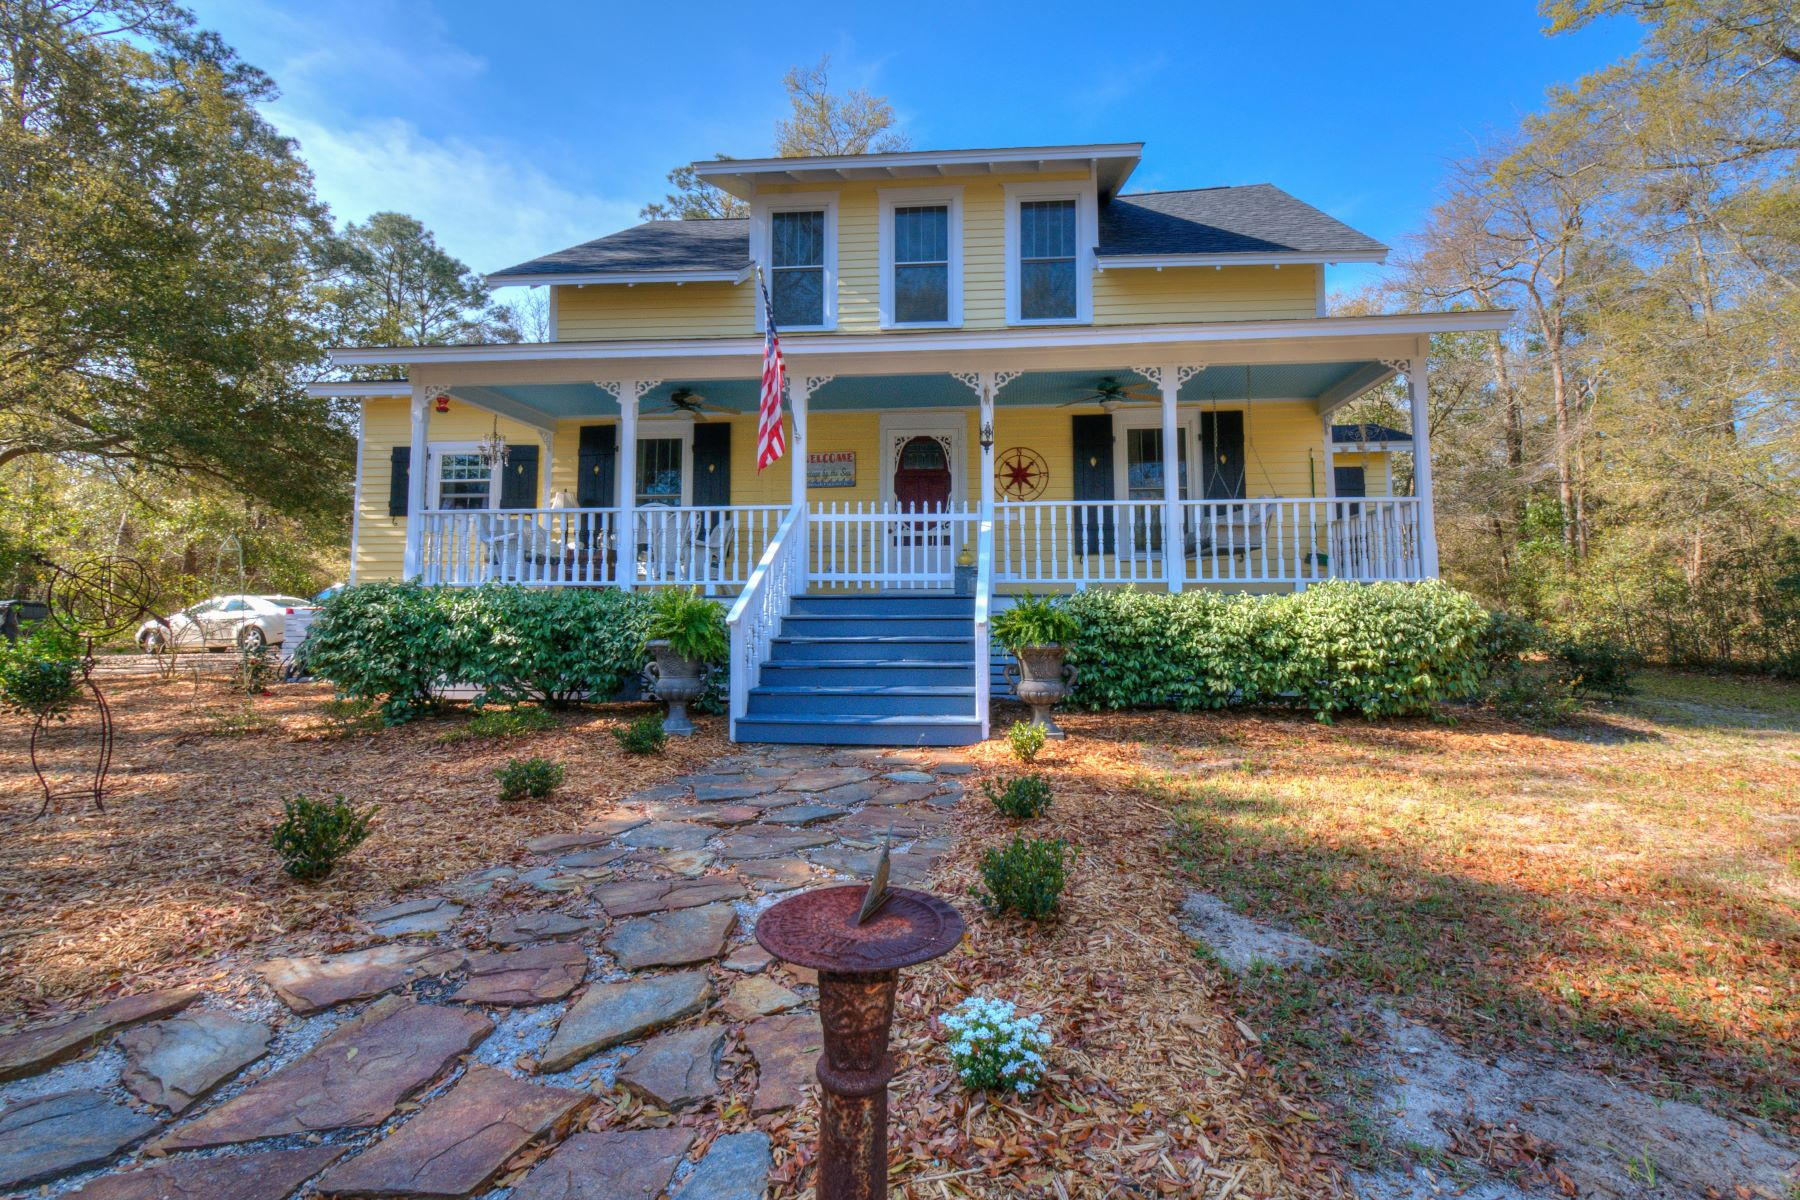 Single Family Home for Sale at Charming Historic Cottage 131 Yaupon Drive Southport, North Carolina 28461 United States